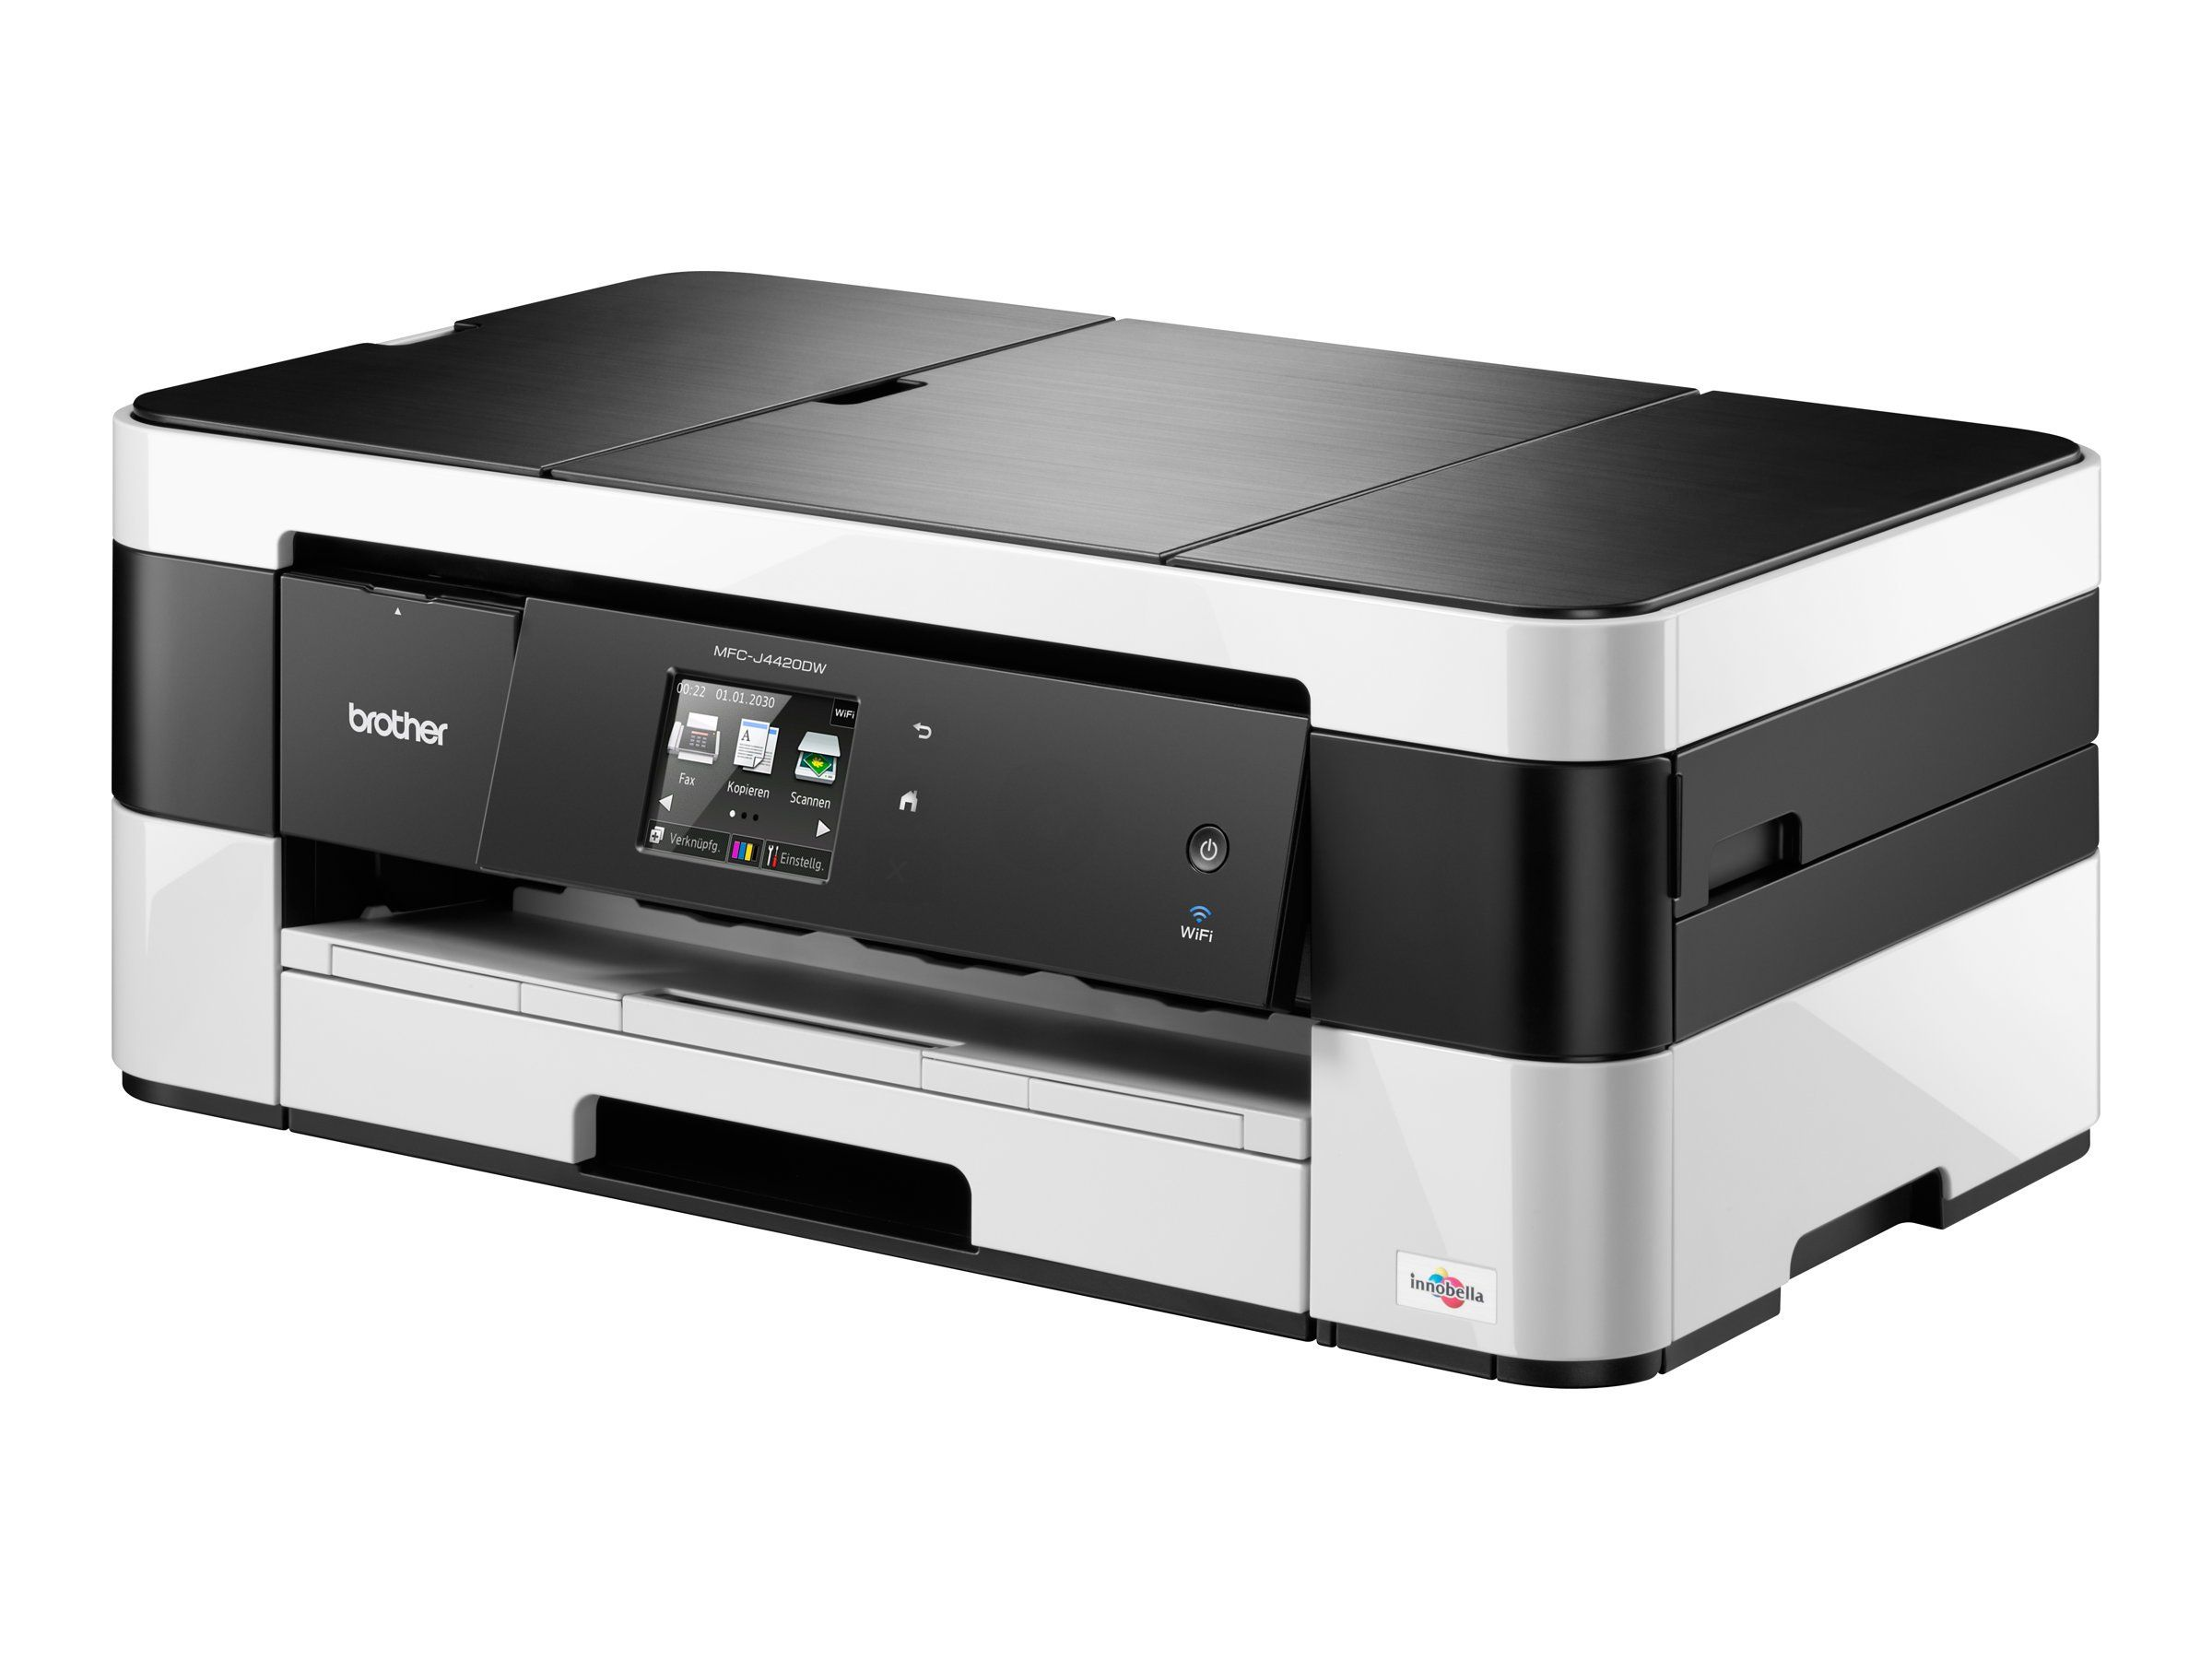 Brother Printer MFCJ4420DW Wireless Color Inkjet All In One With